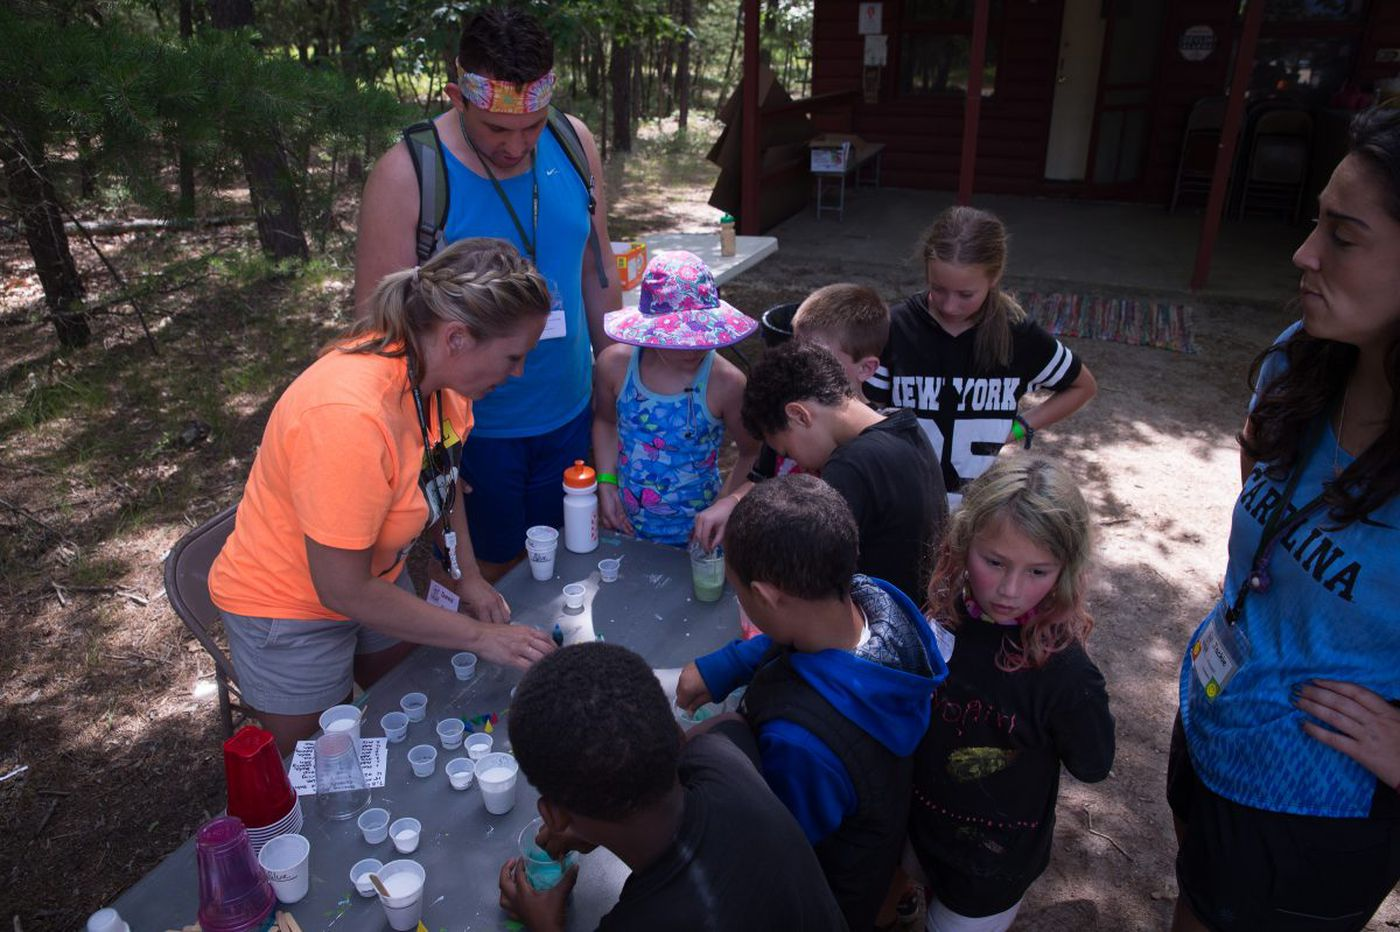 Camp with 'no worries' for young cancer patients and siblings